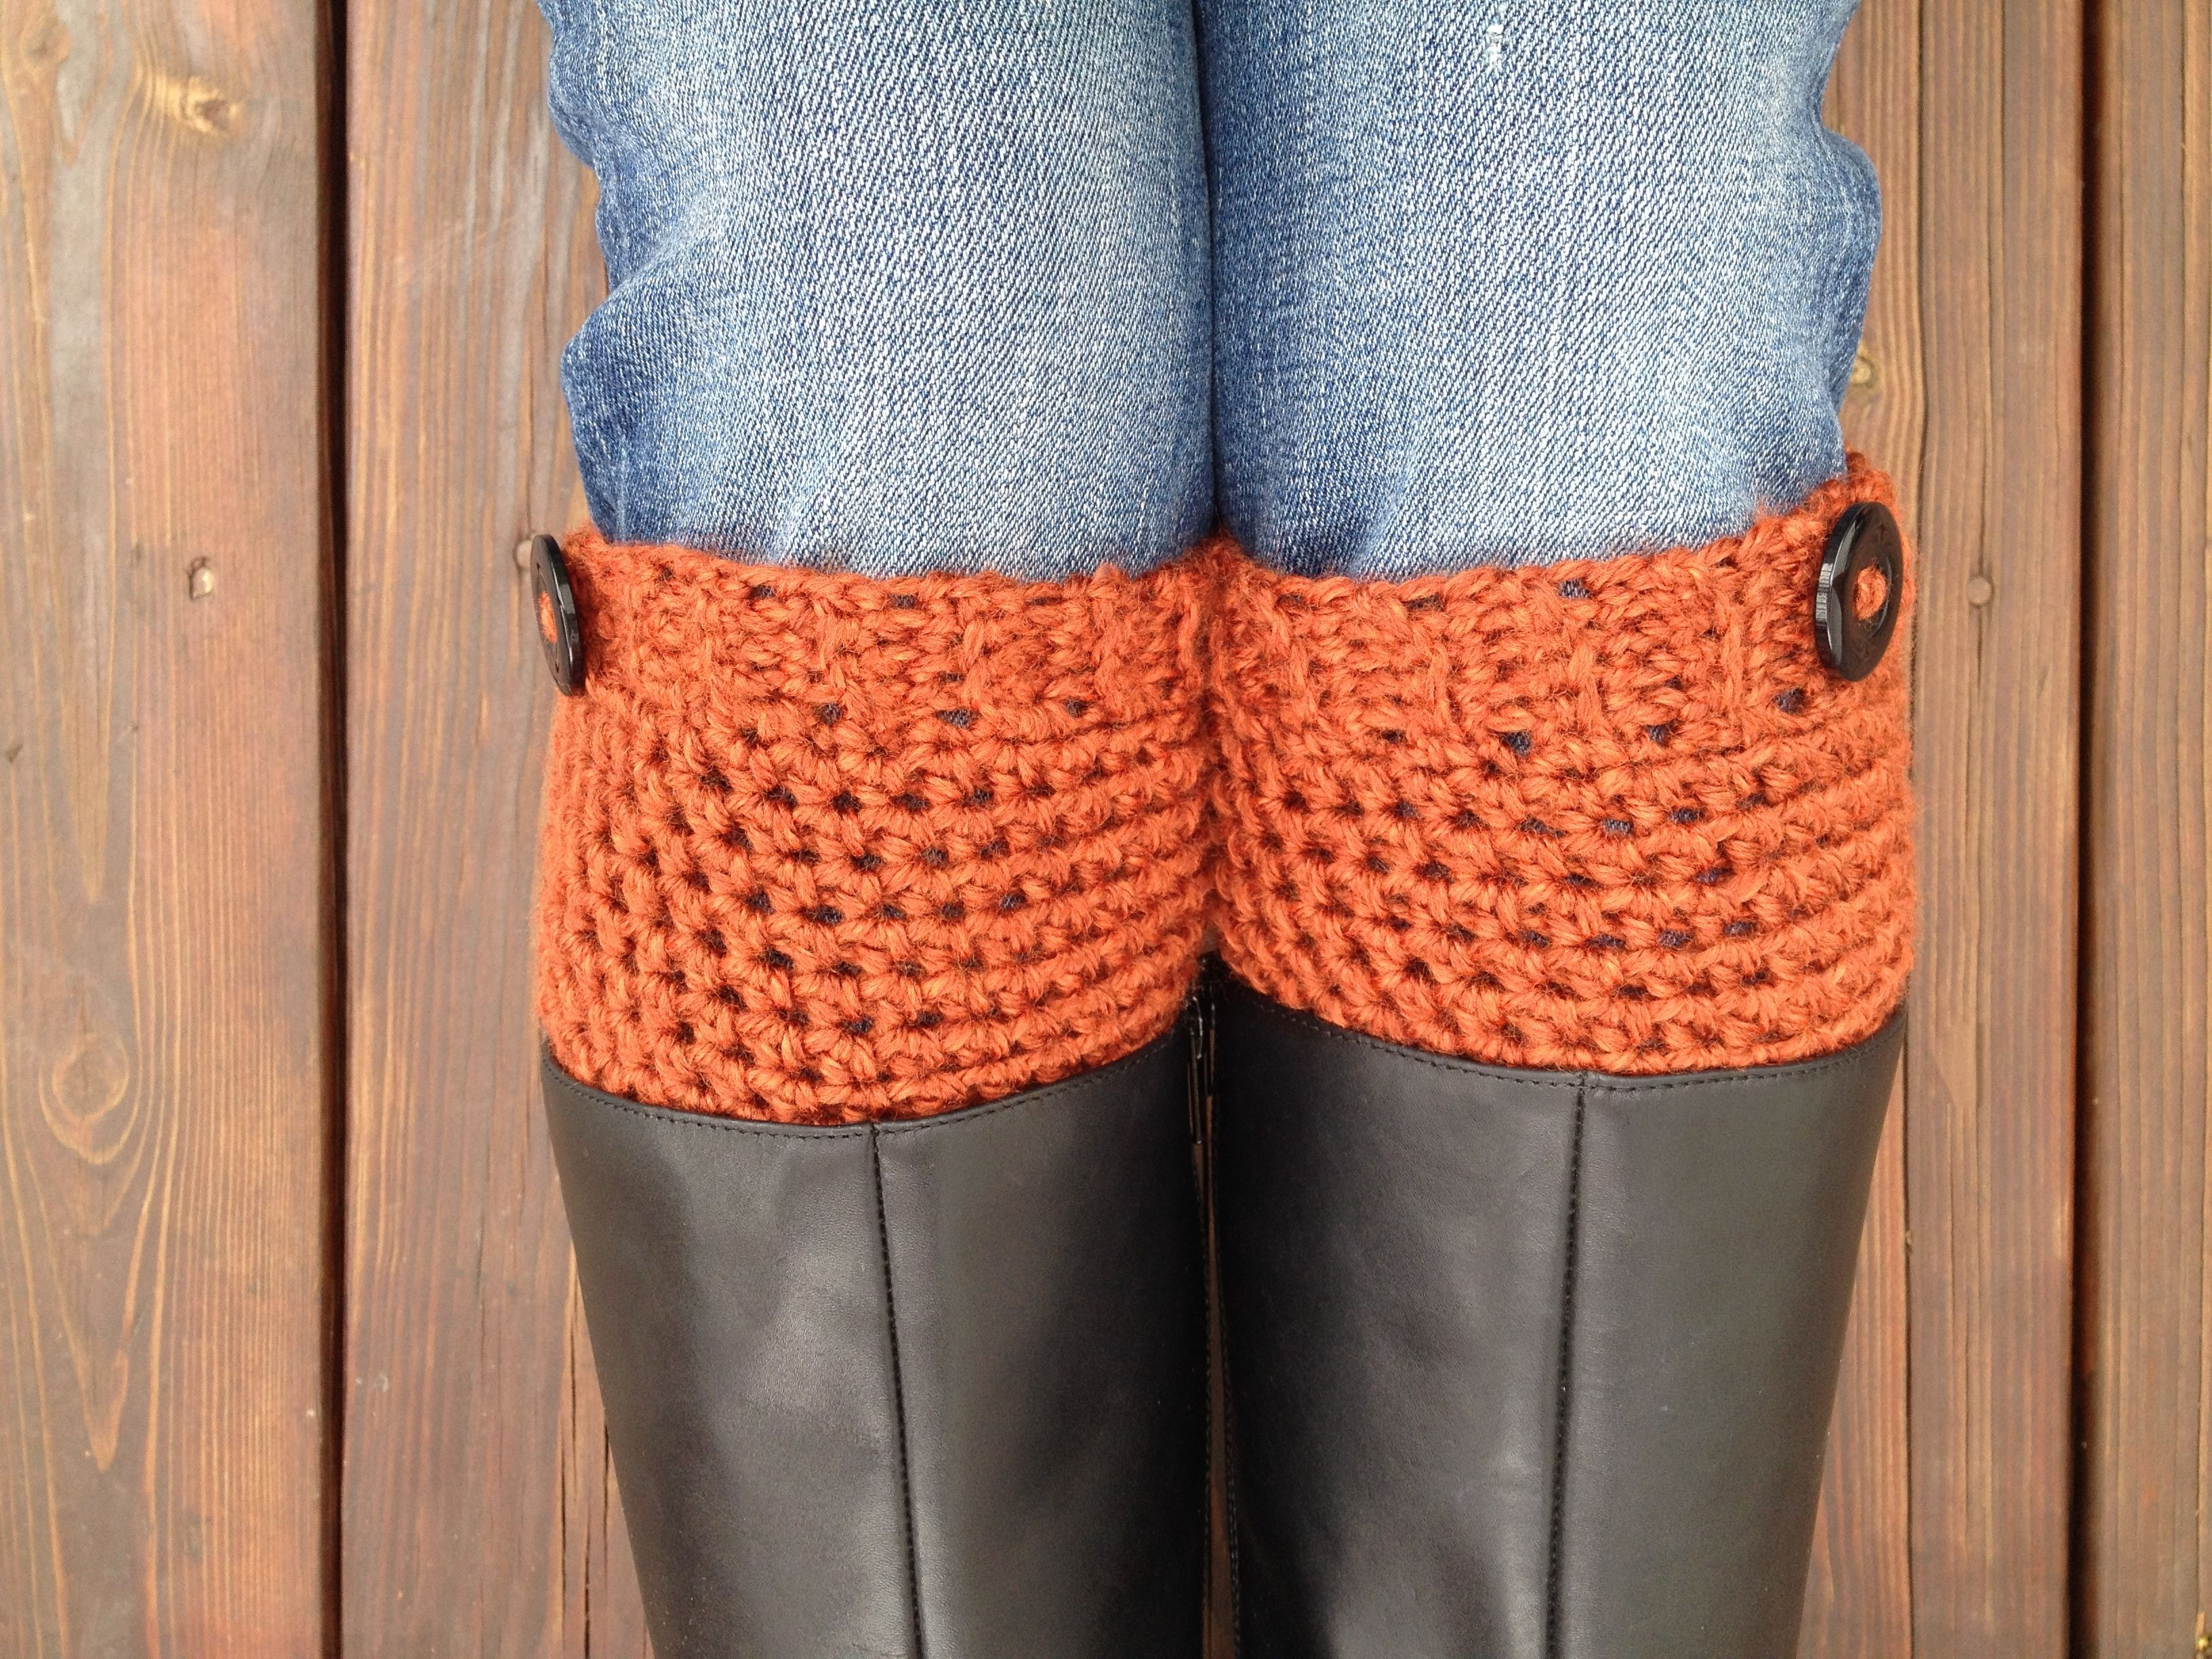 Free Knitting Patterns For Boot Toppers Crochet Boot Cuffs Or Boot Toppersfree Pattern Knit And Crochet